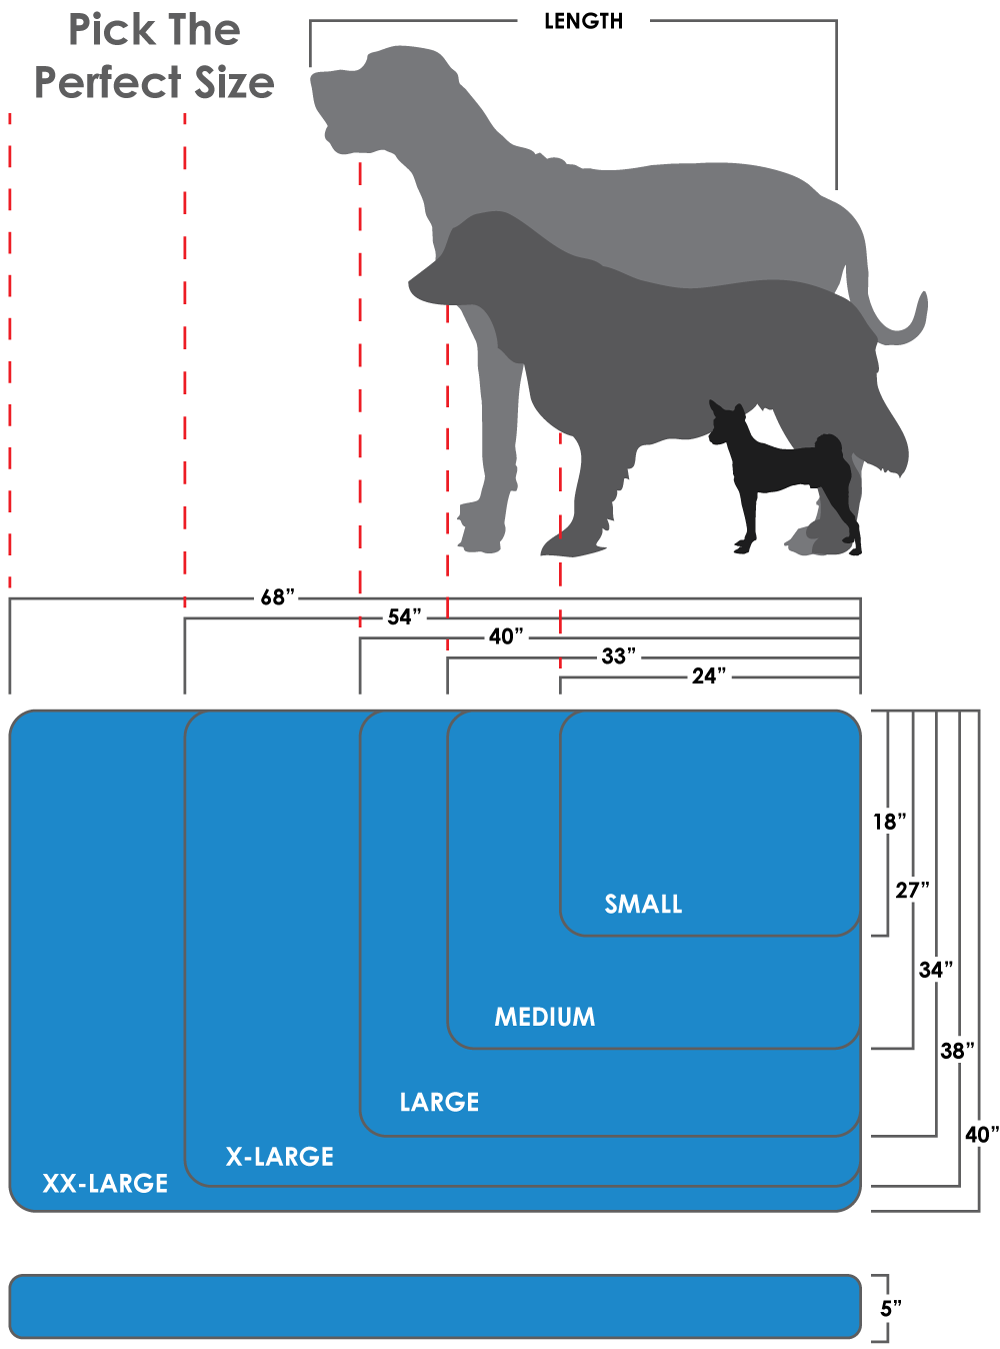 rectangle orthopedic lux bed dog beds orthopedic dog bed and dog knee cap diagram orthopedic dog diagram [ 1000 x 1349 Pixel ]